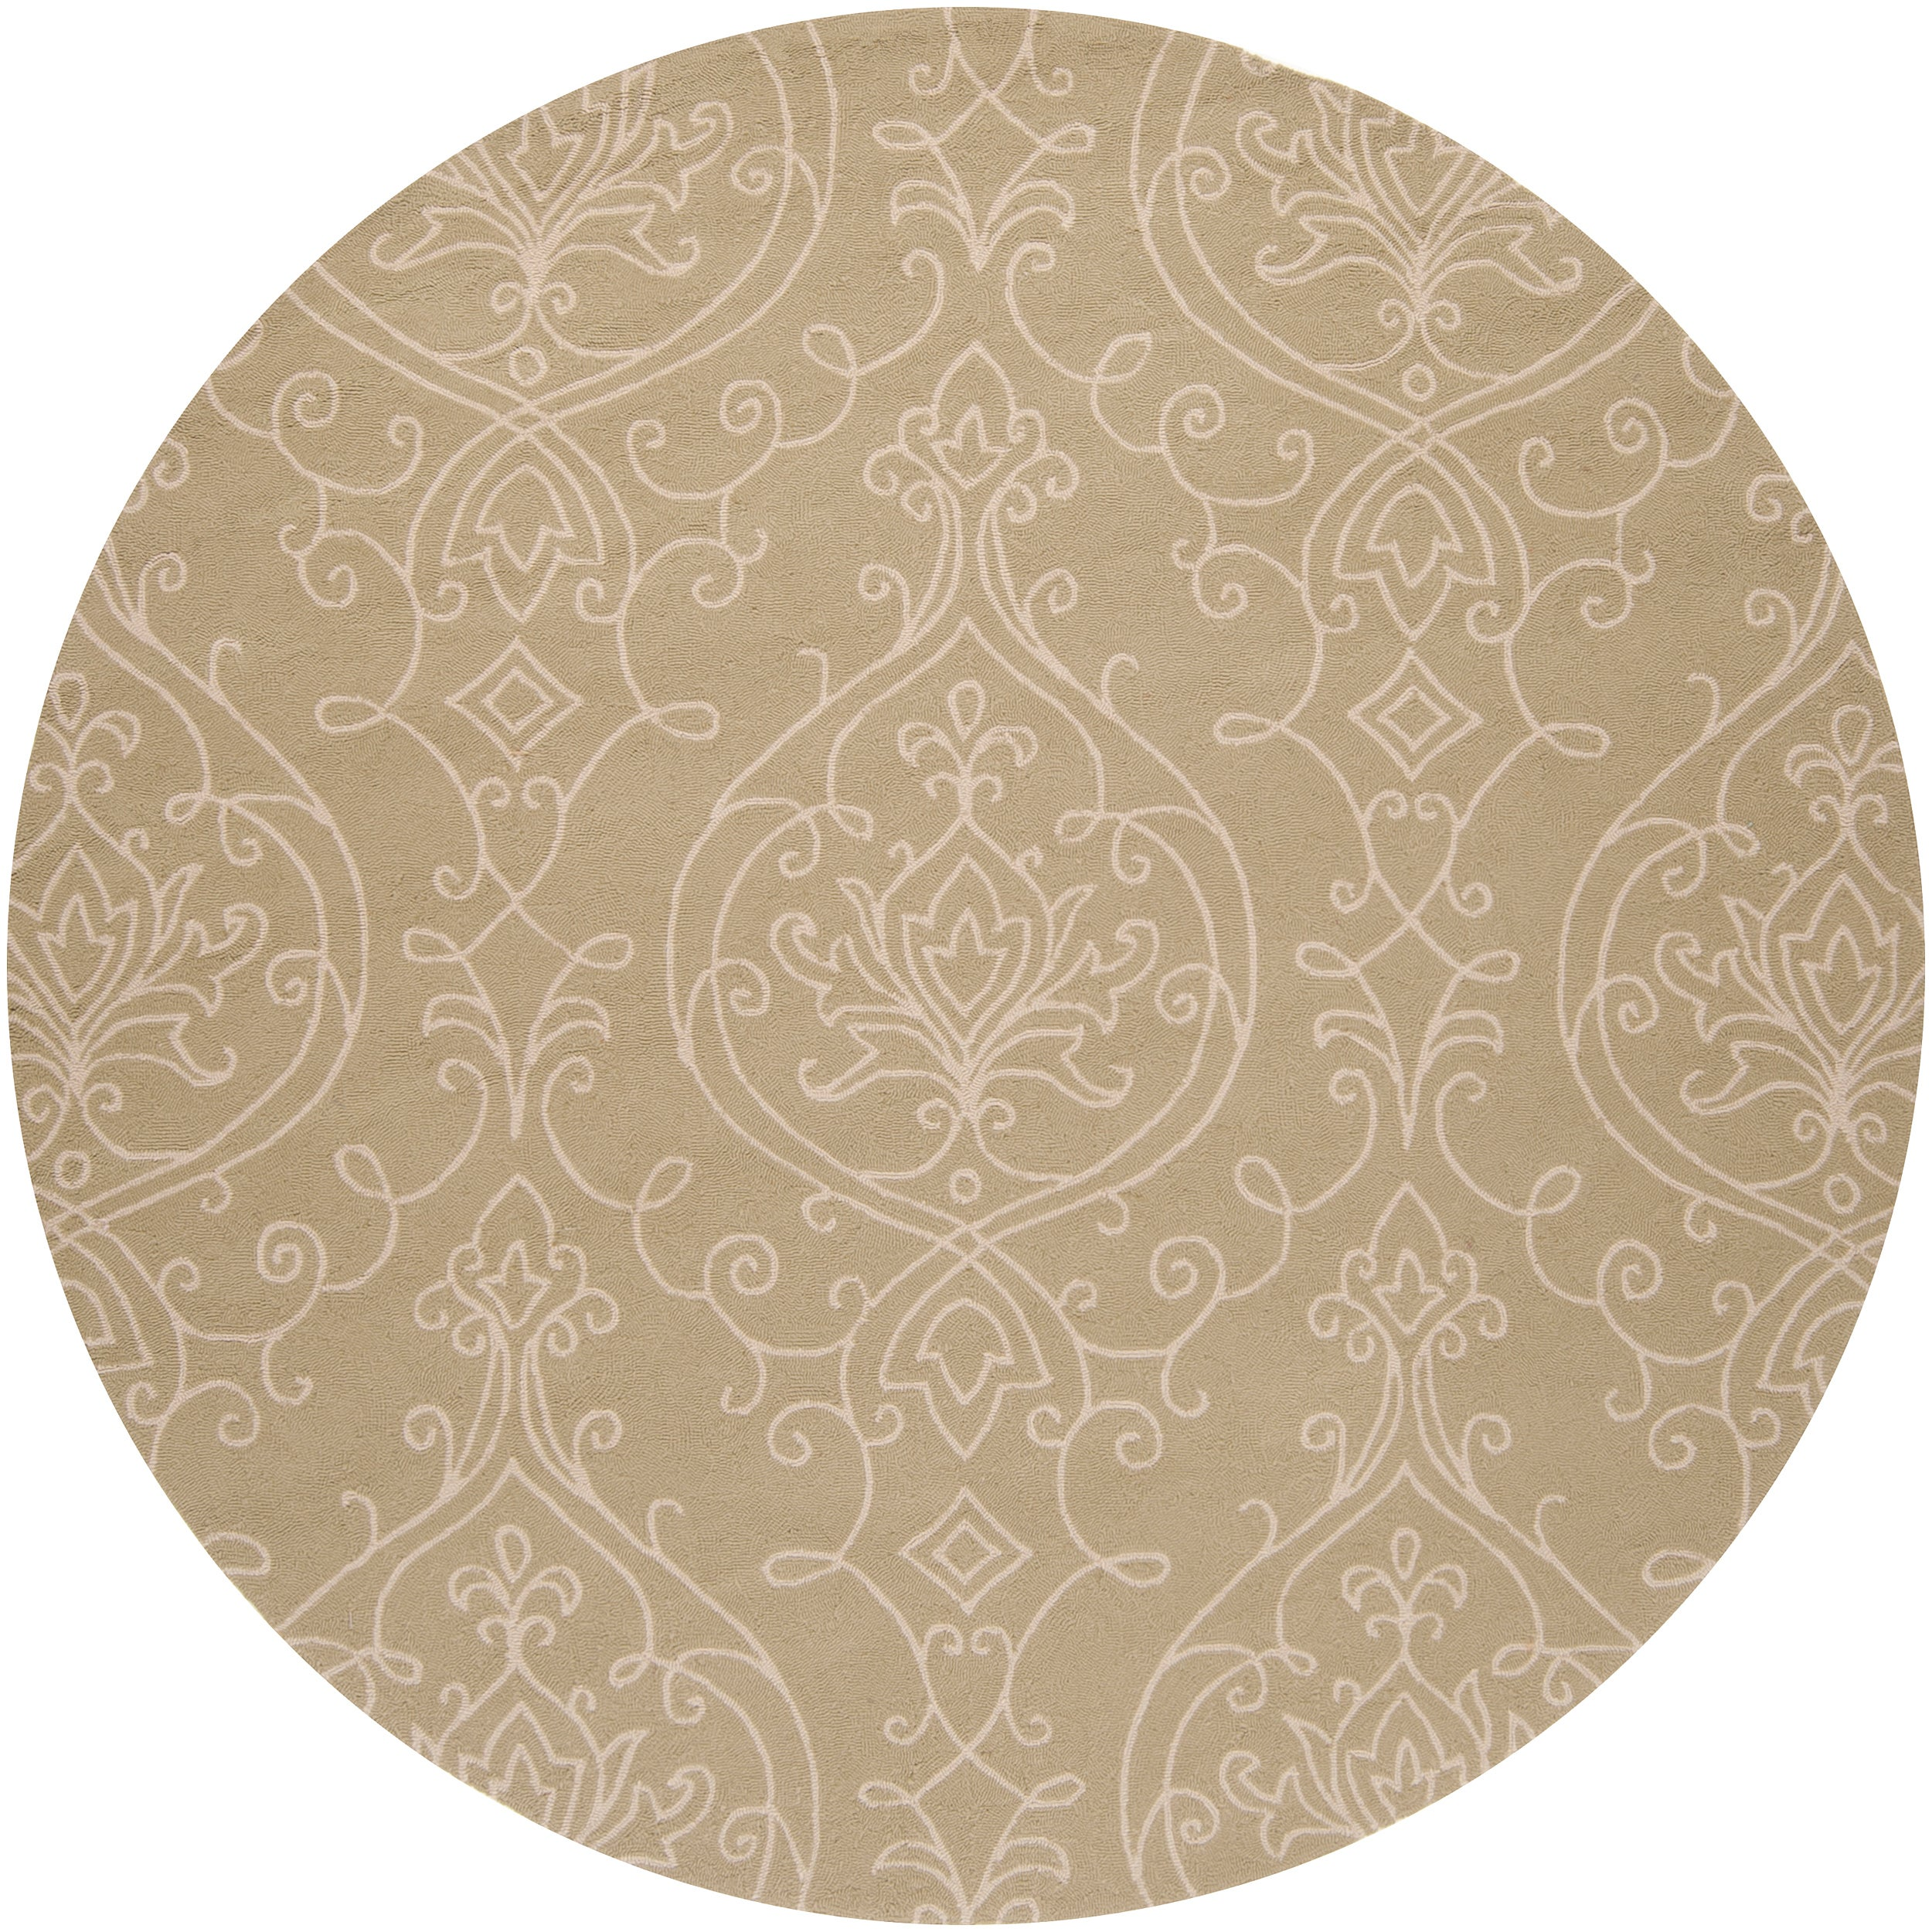 Hand-hooked Green Radiant Indoor/Outdoor Damask Print Rug (8' Round)